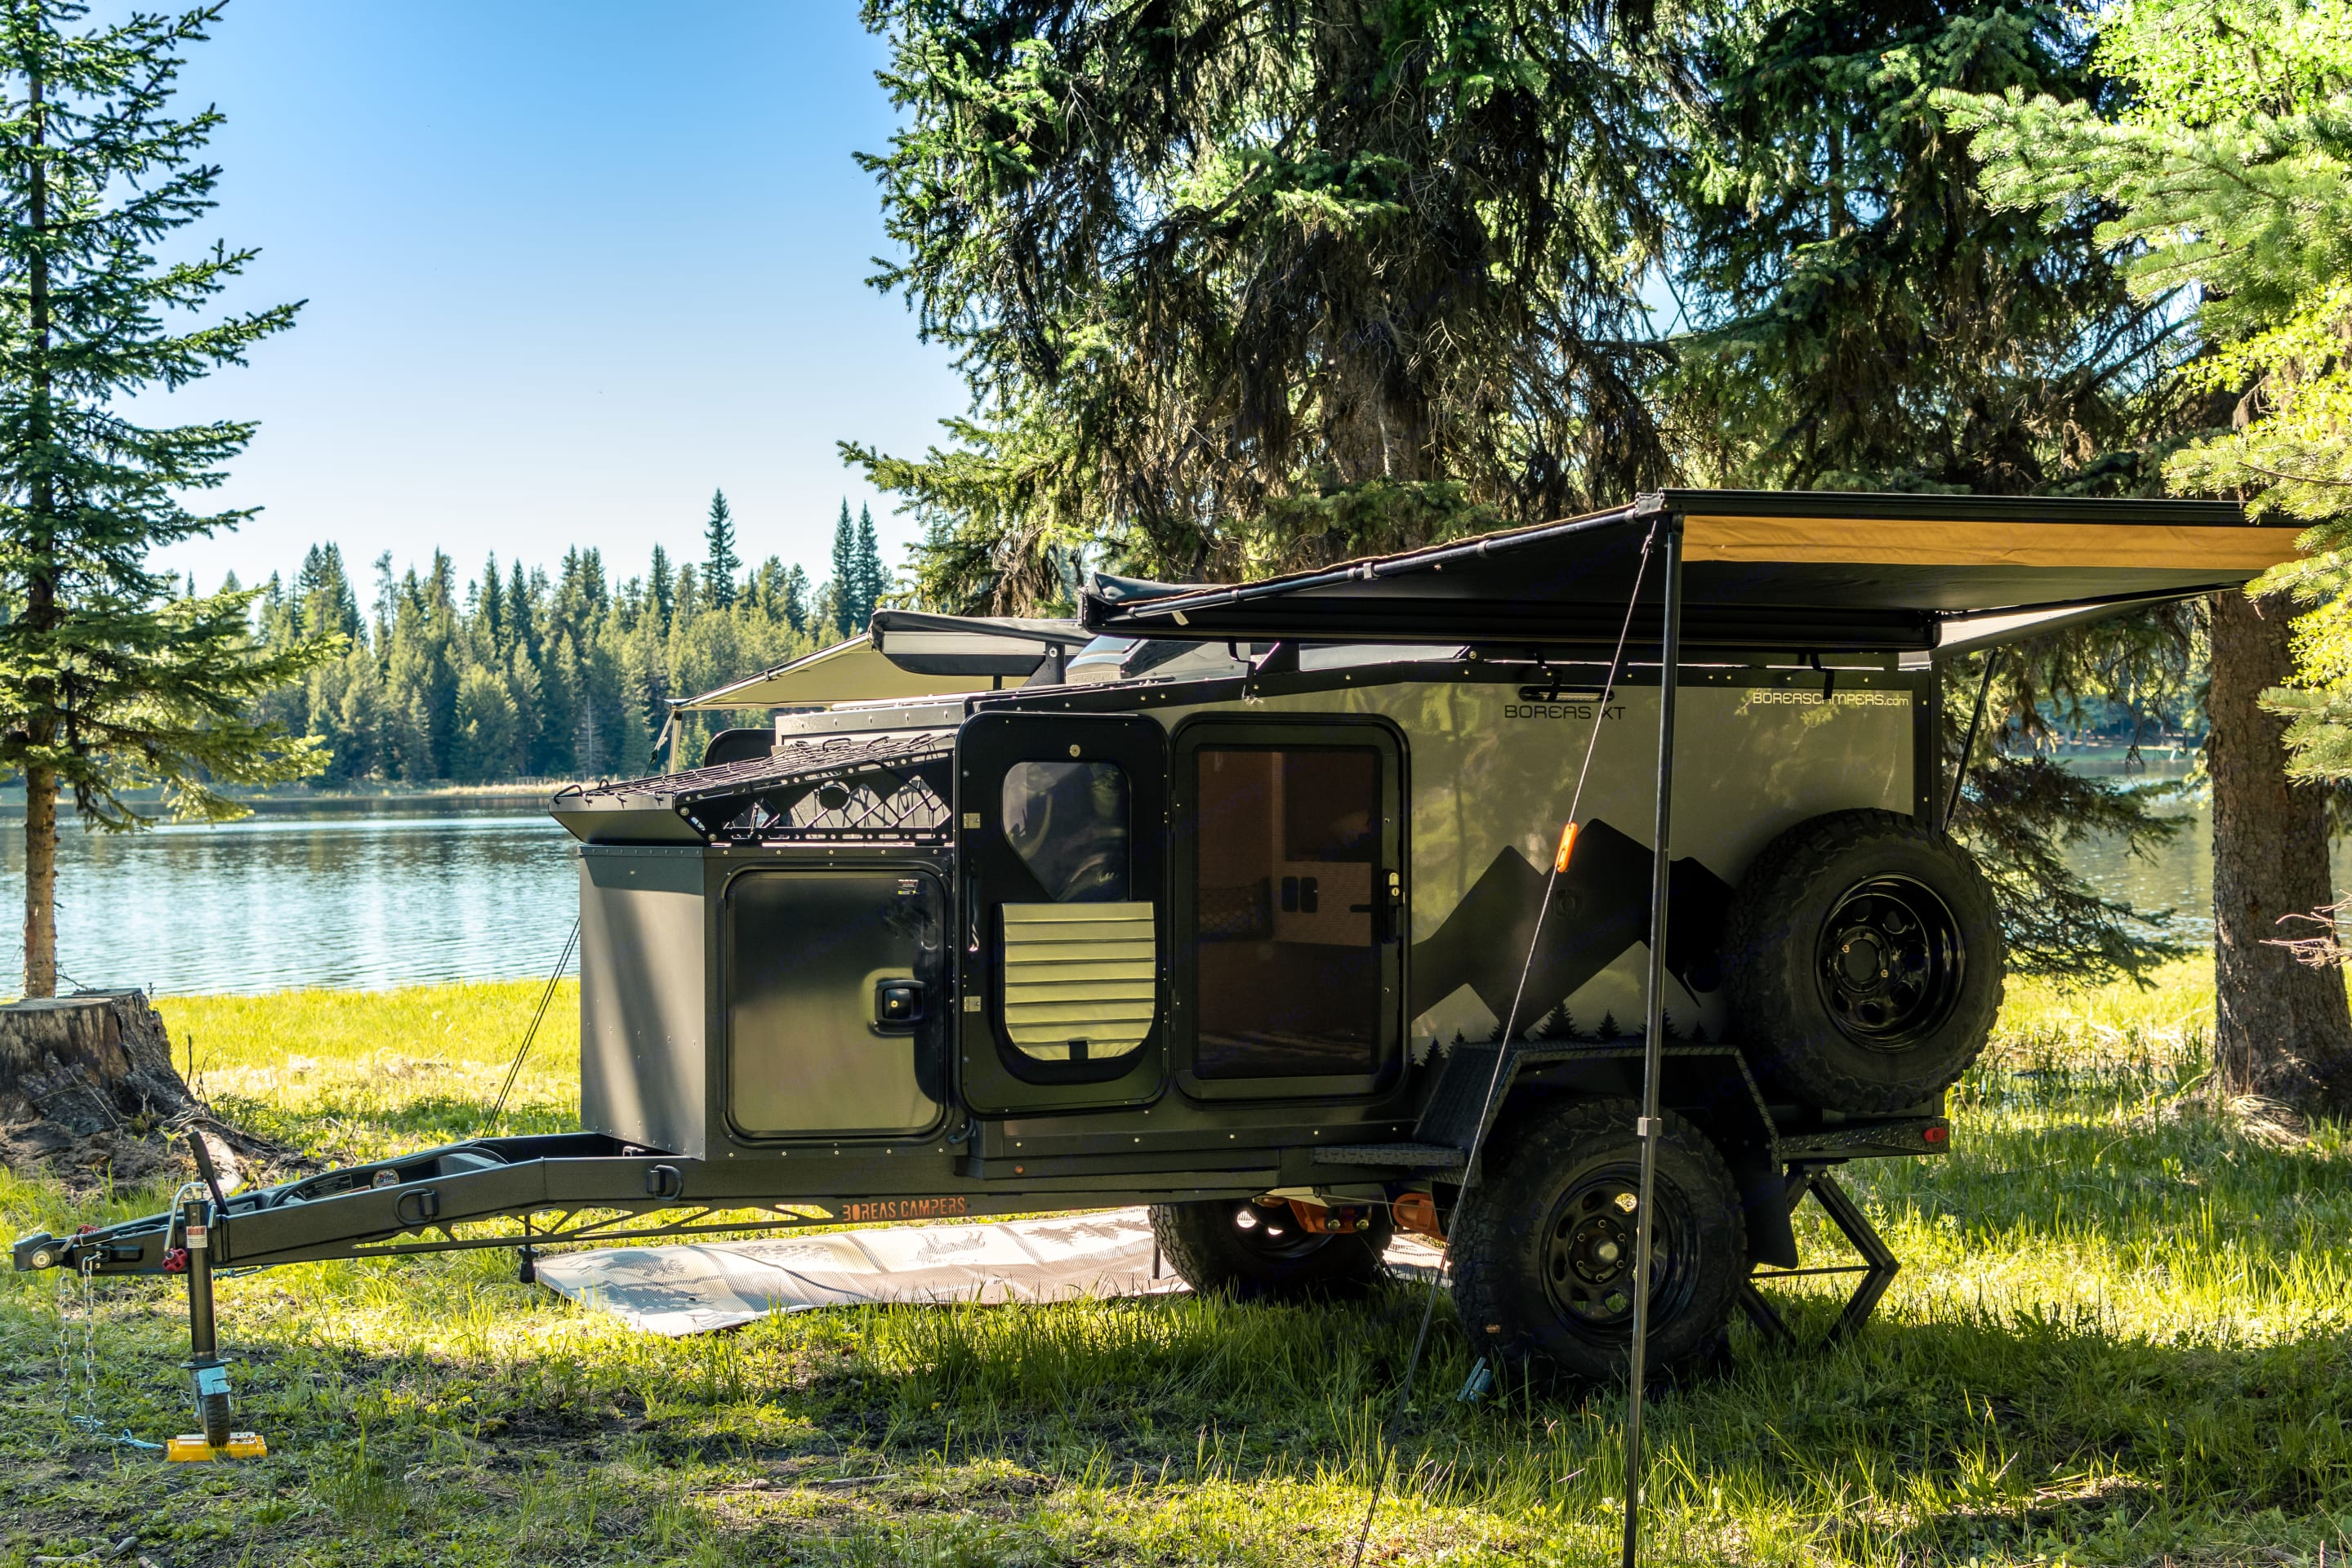 Set up by the lake. The Boreas is easy to get into tight spots!. Boreas XT 2021